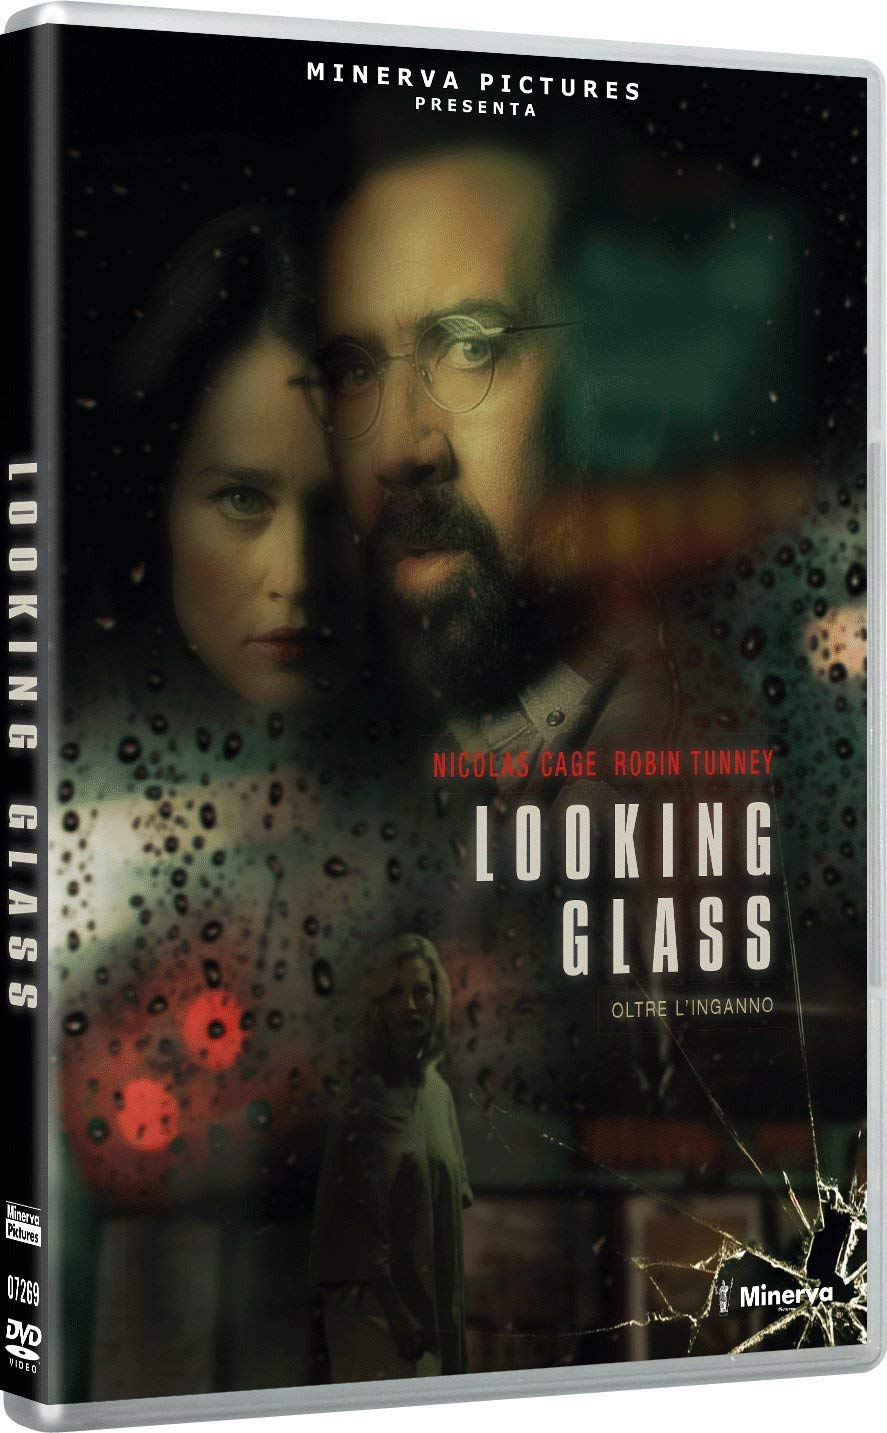 LOOKING GLASS (DVD)